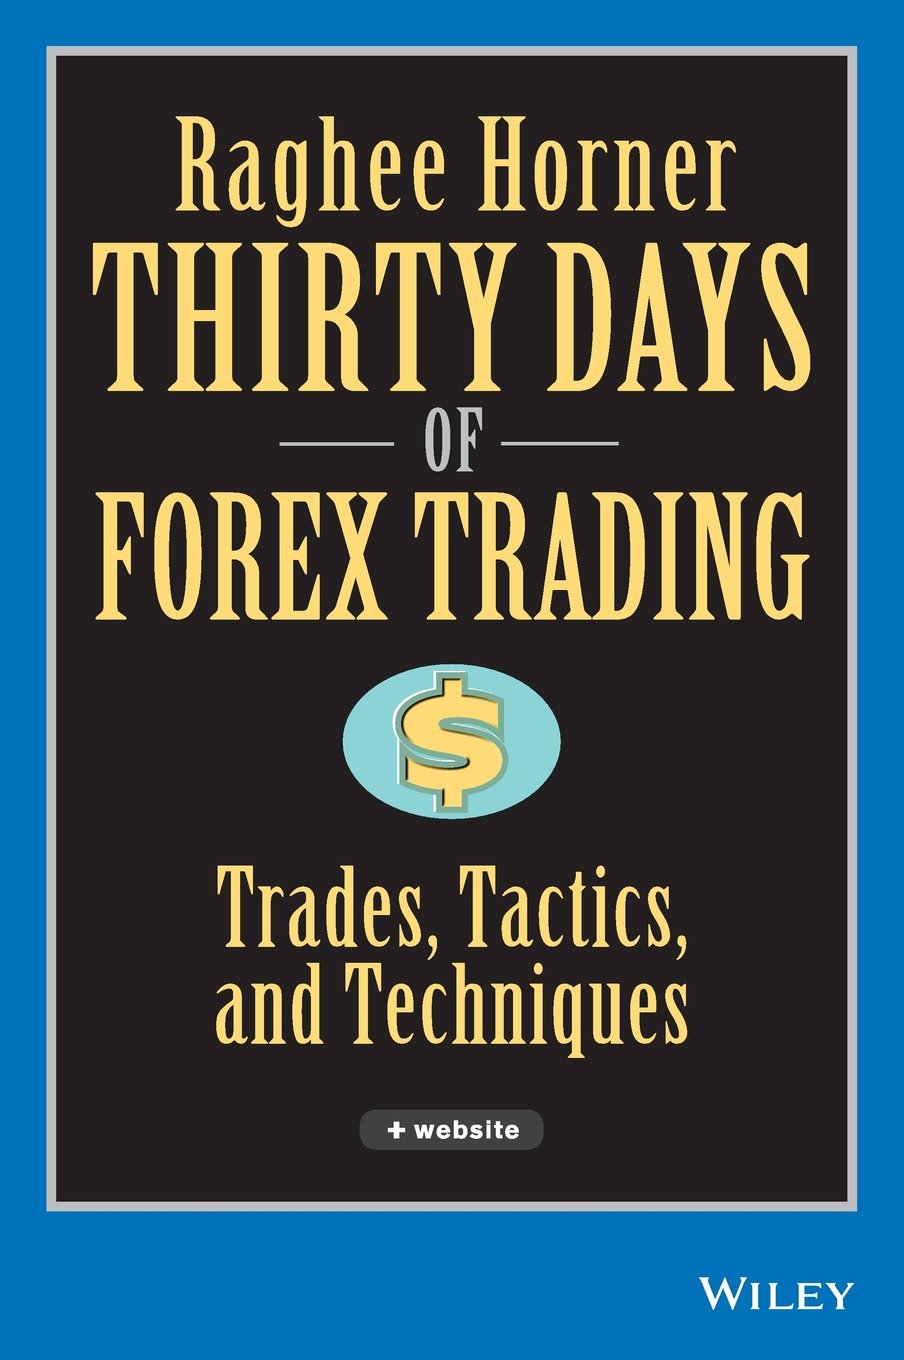 Read Online Thirty Days of FOREX Trading: Trades, Tactics, and Techniques pdf